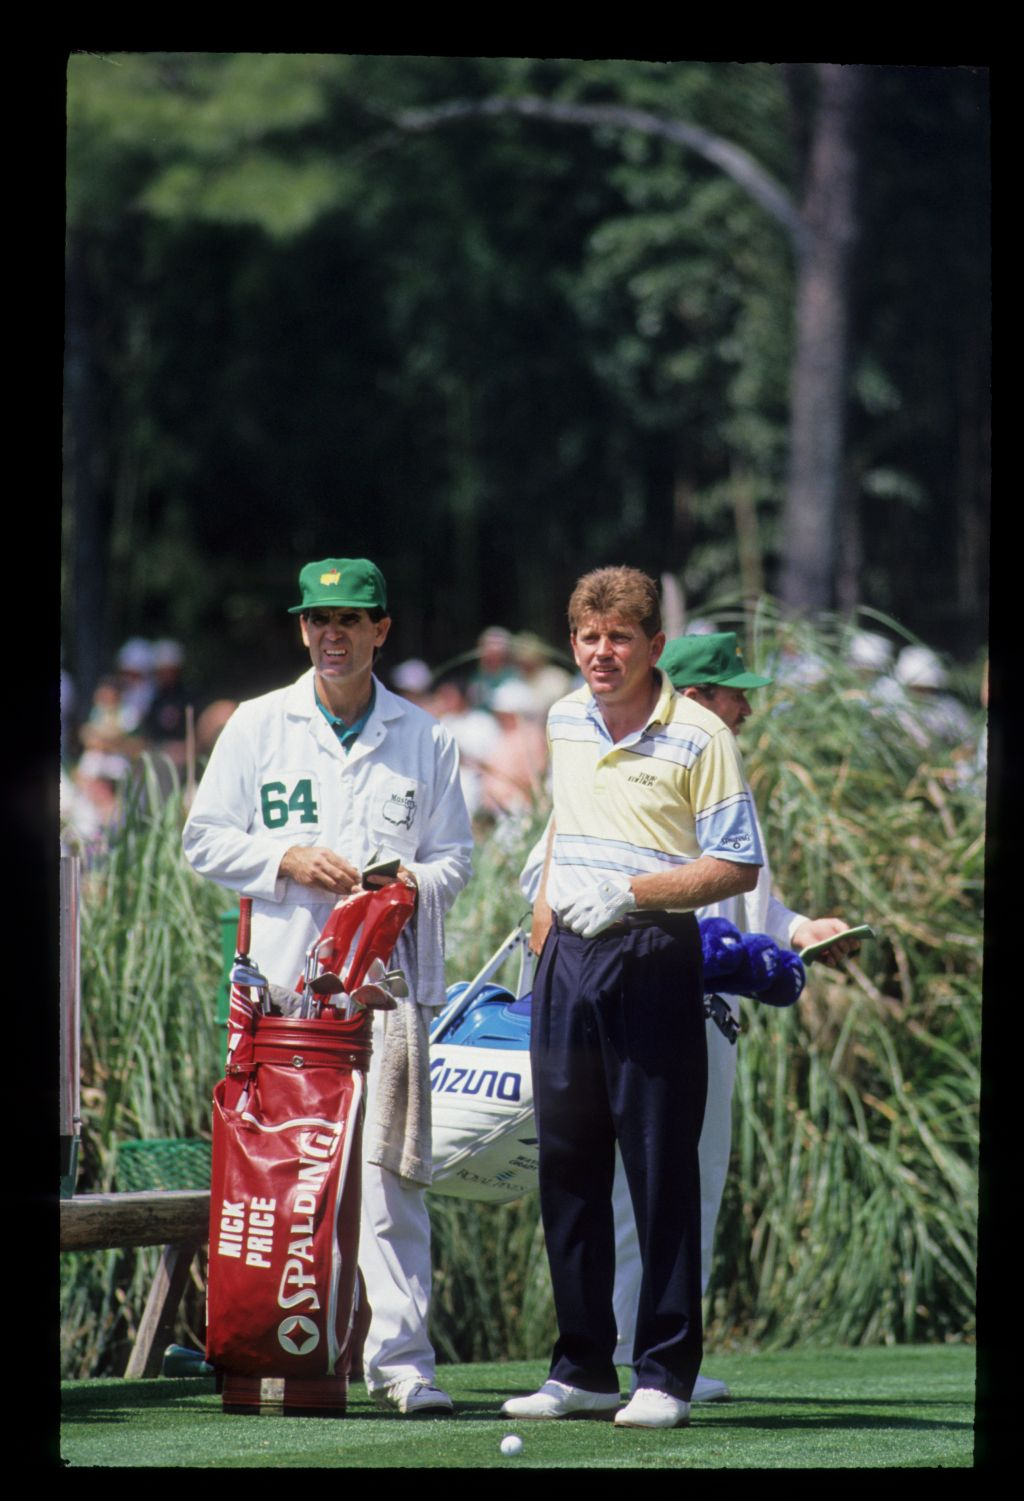 Nick Price and his caddie considering distances on the tee during the 1992 Masters